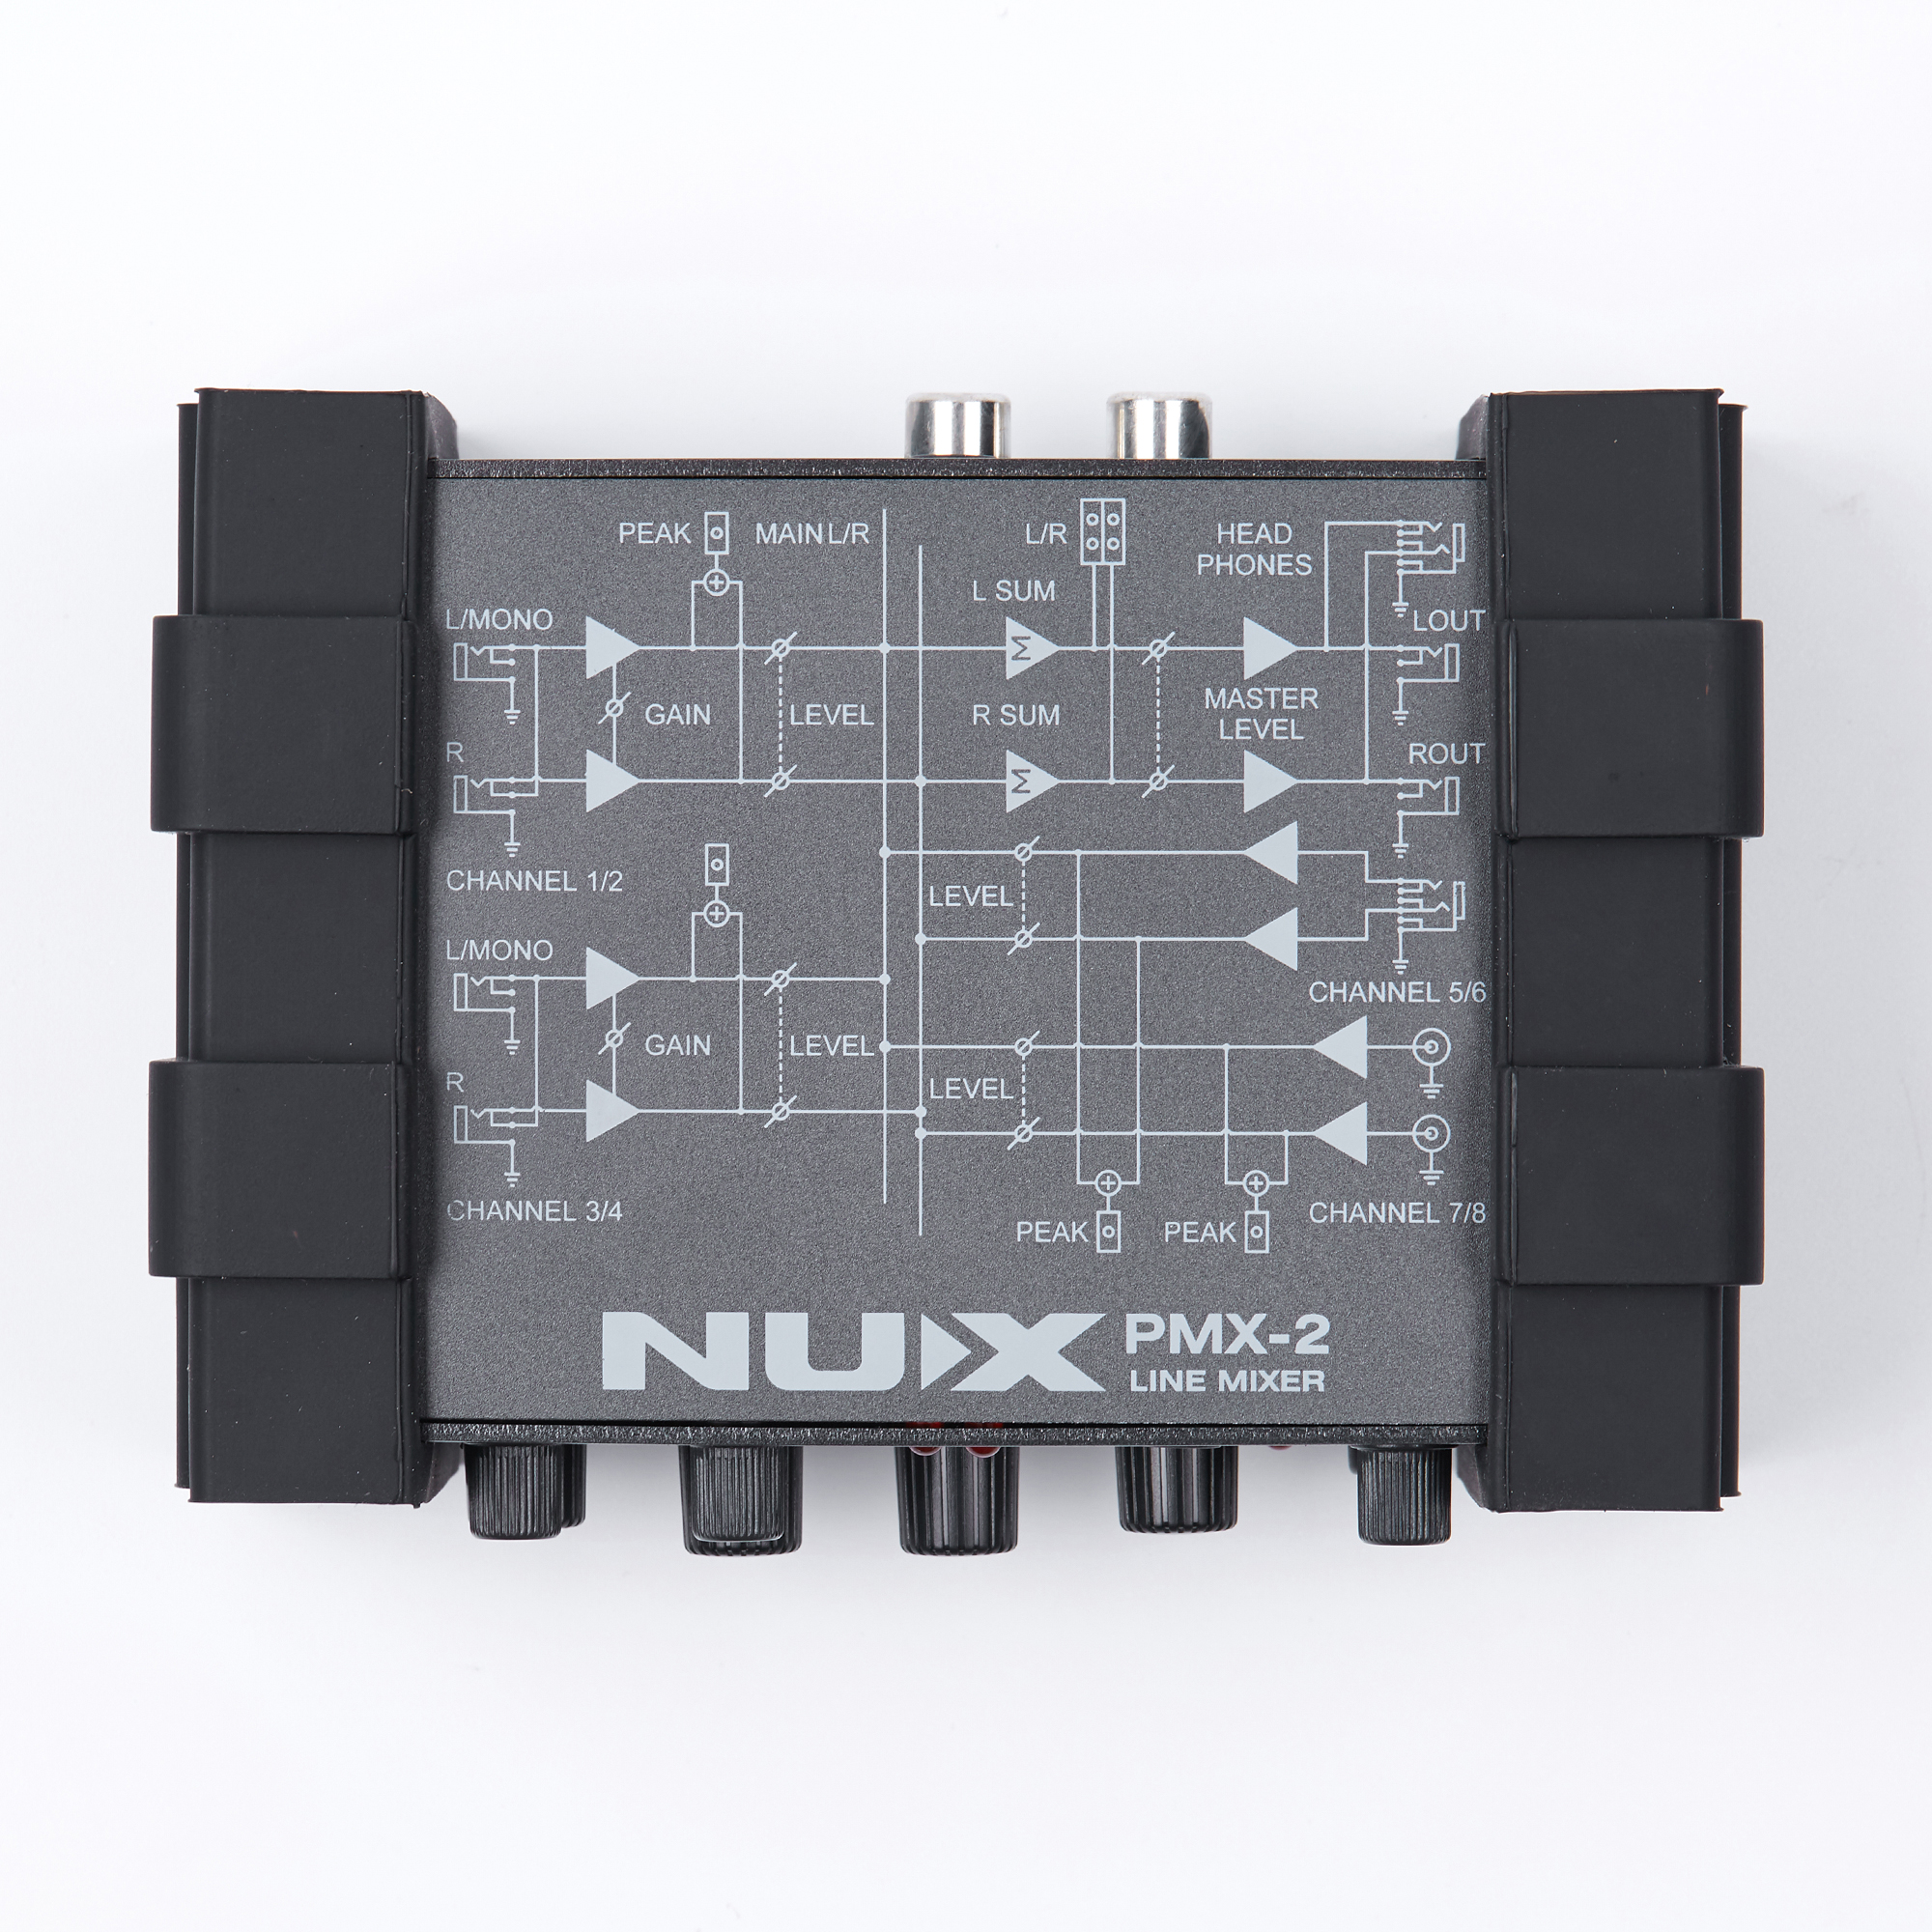 Gain Control 8 Inputs and 2 Outputs NUX PMX-2 Multi-Channel Mini Mixer 30 Musical Instruments Accessories for Guitar Bass Player zanussi zcg 562 mw